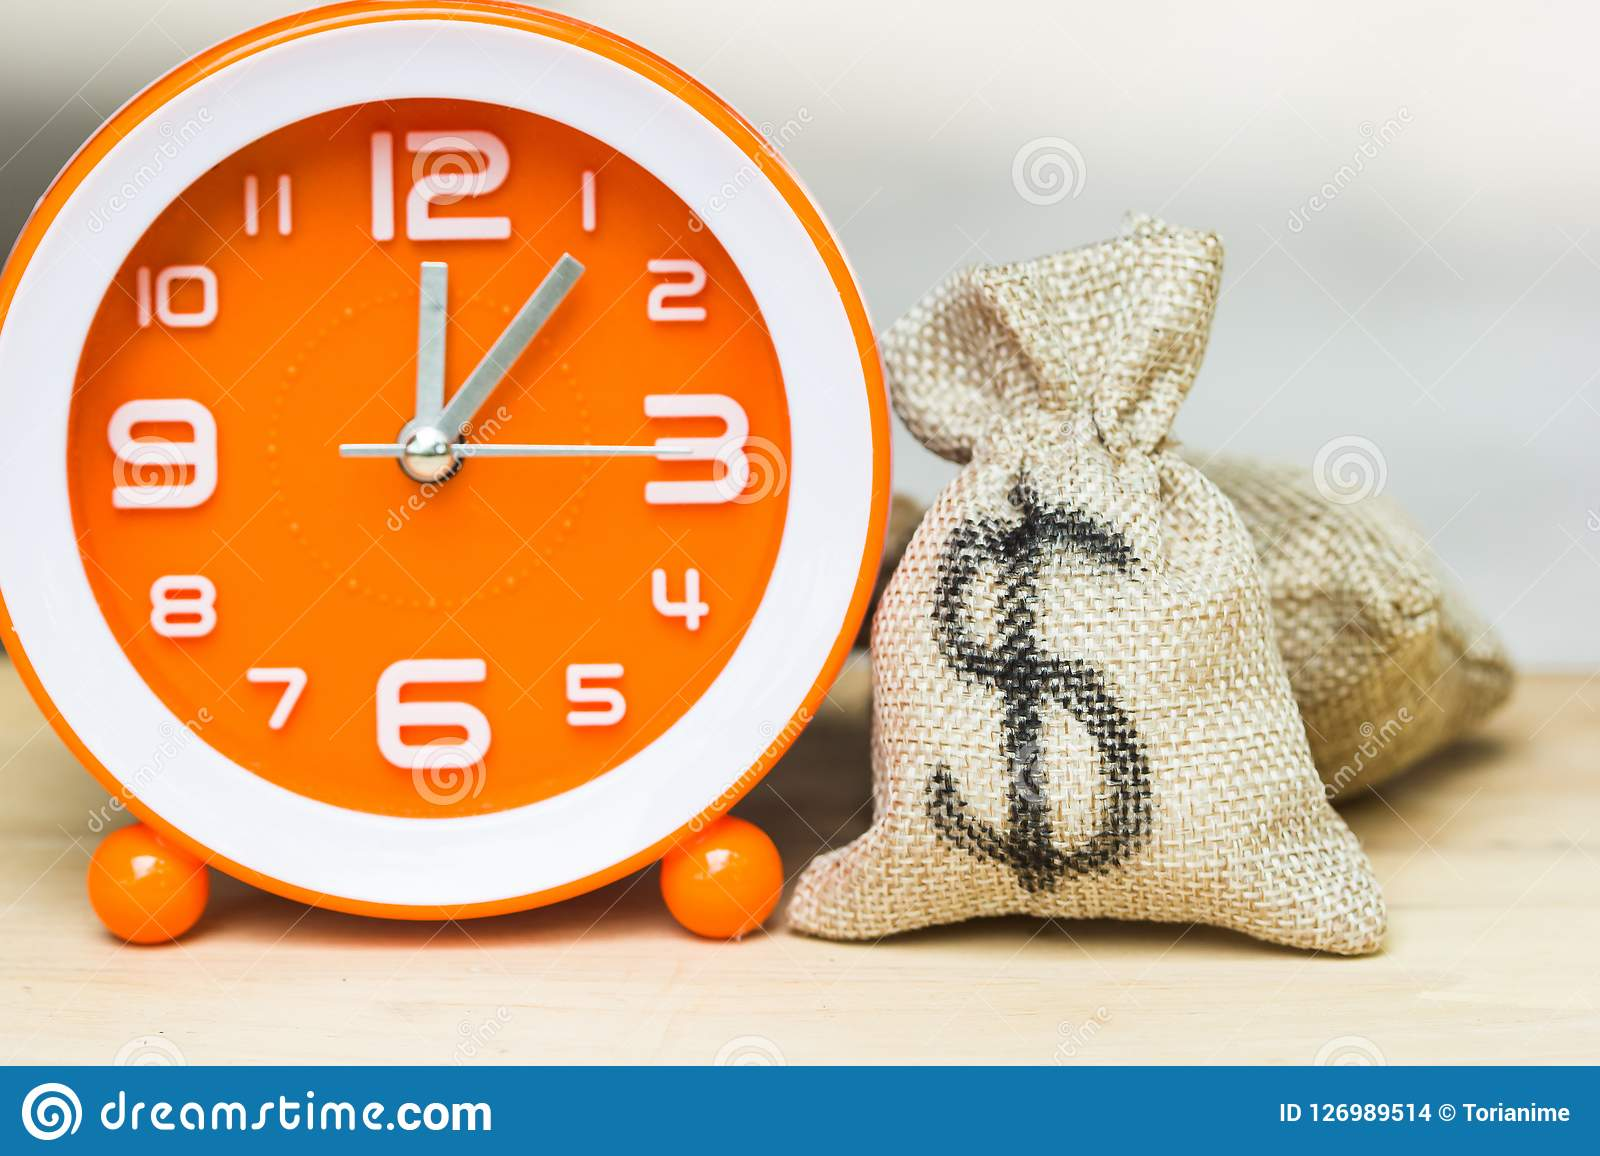 Use money investment to save time and resources concept.